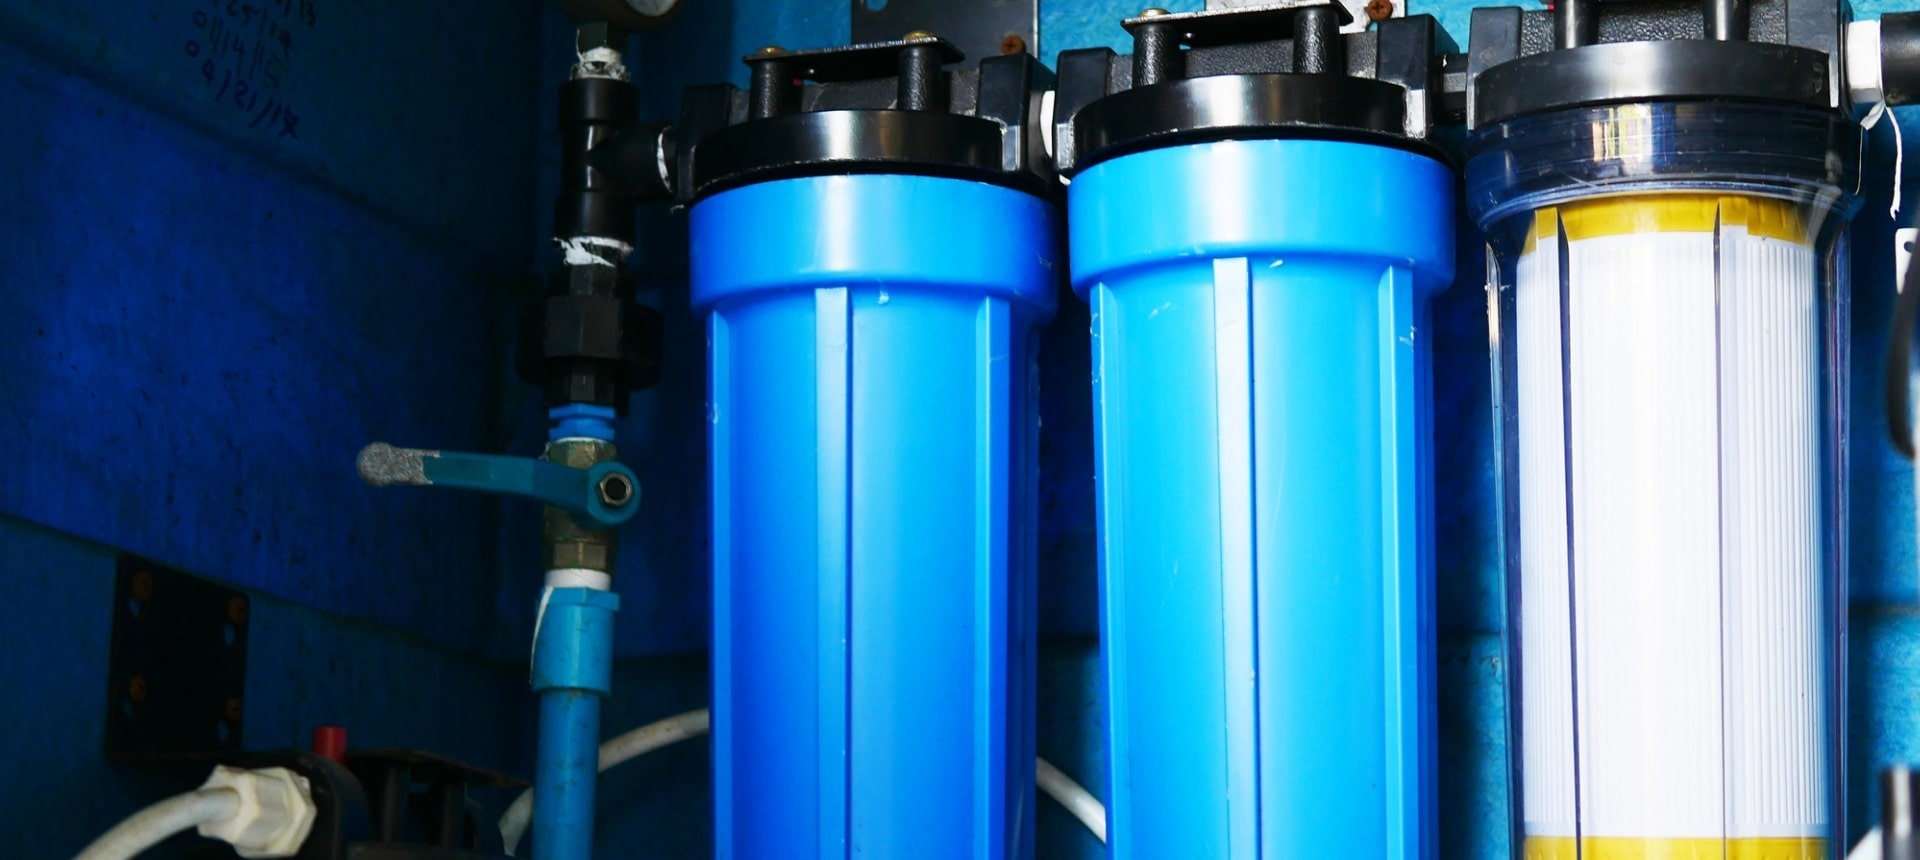 water-filter-cartridge-picture-id1062918632-min